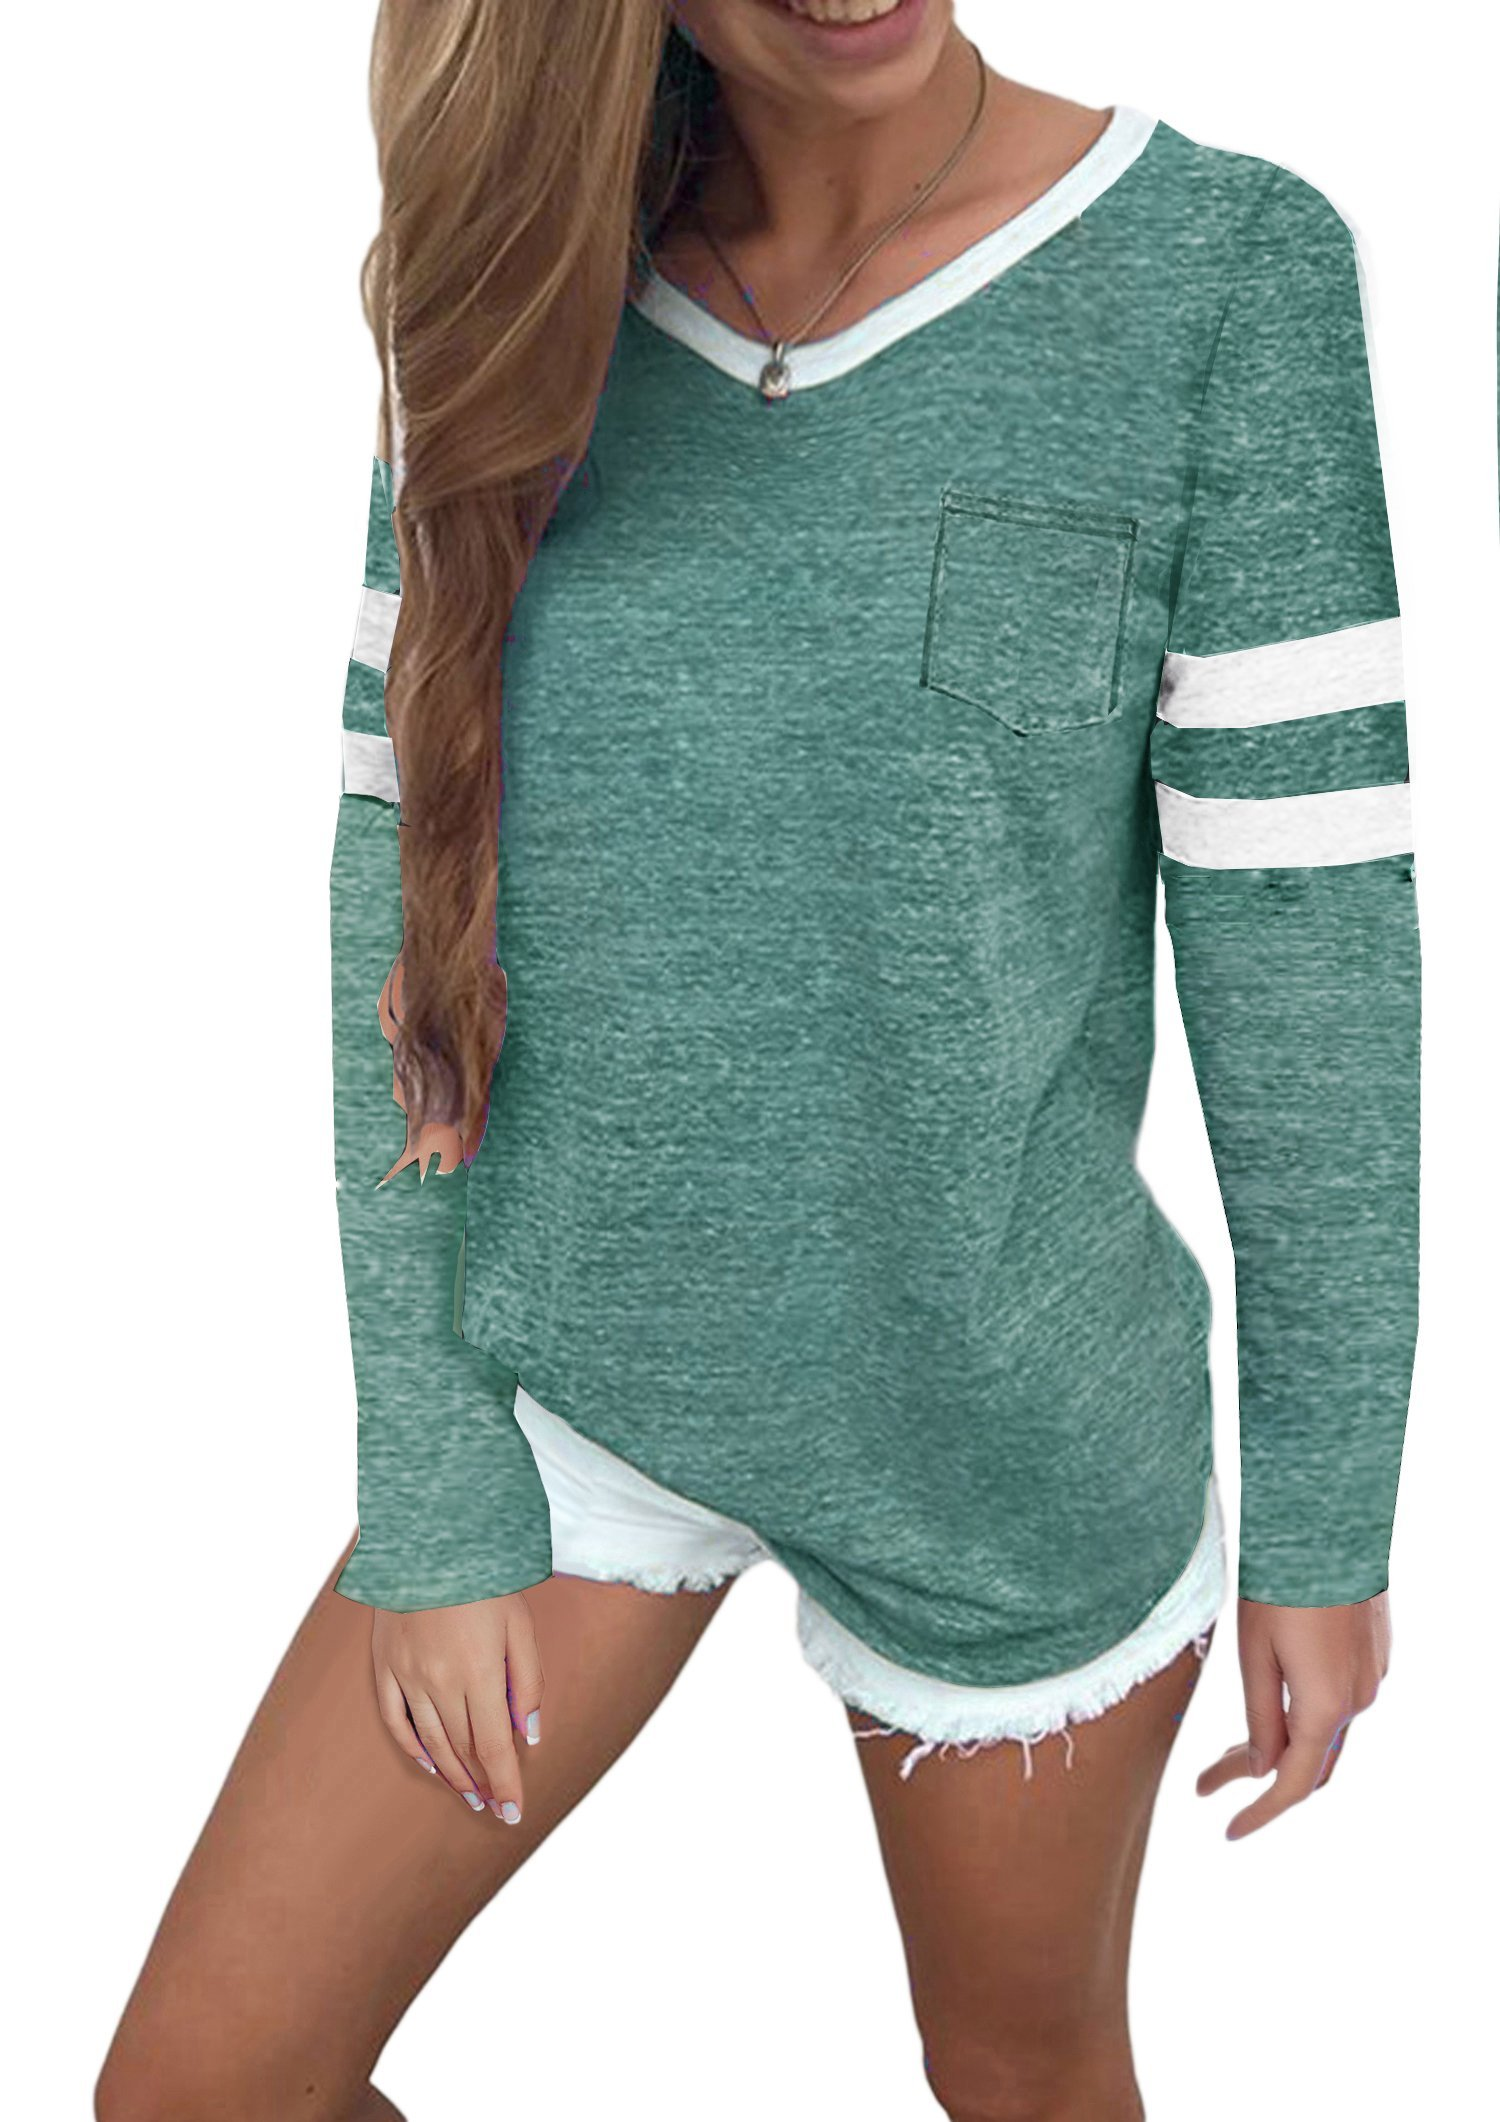 Twotwowin Women's Summer Tops Casual Cotton V Neck Sport T Shirt Short Sleeve Blouse (Style2 Green, Small)